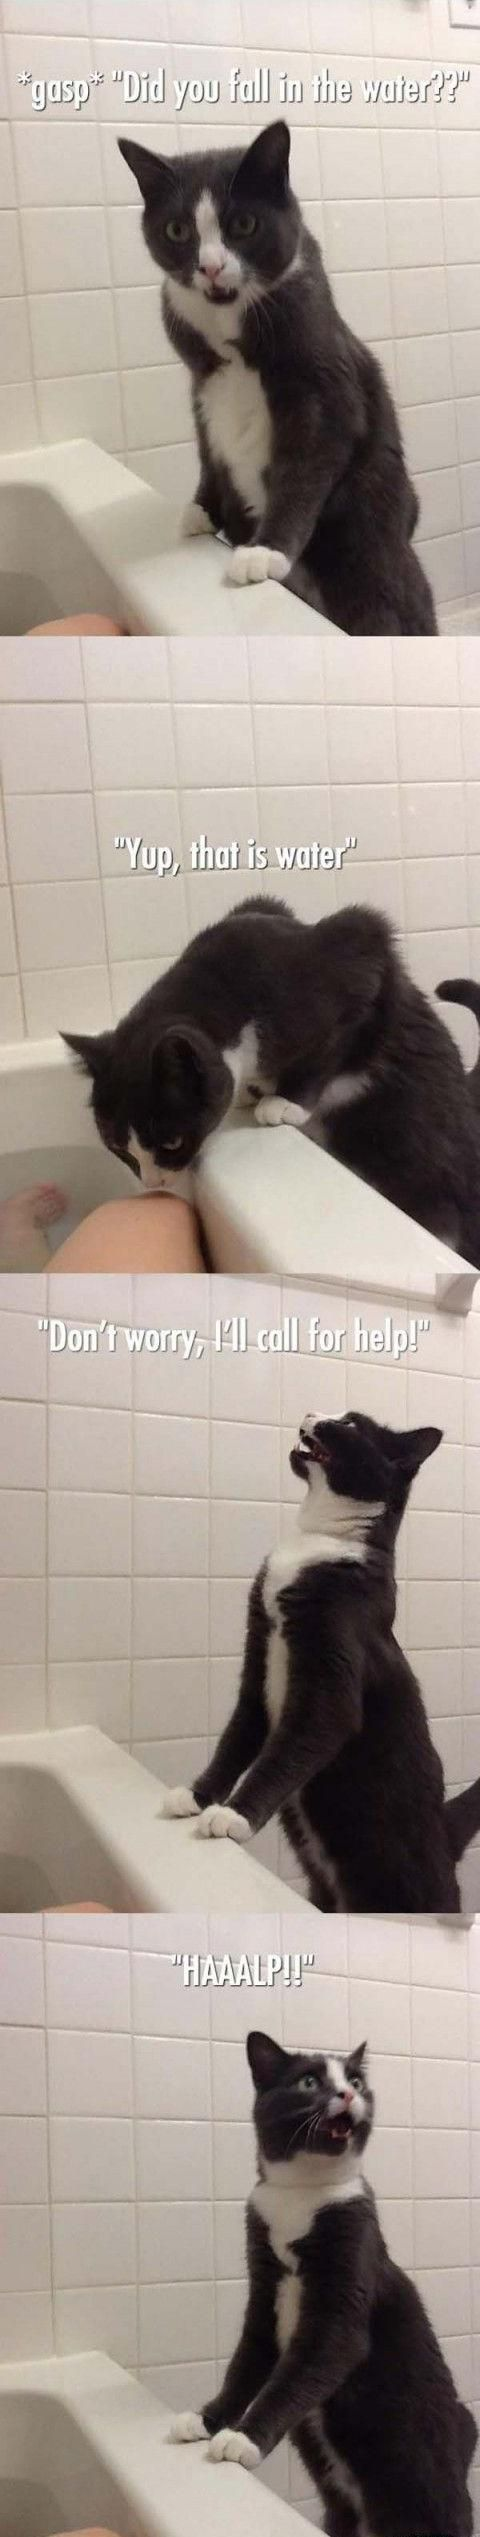 bathe a cat, cat overly dramatic expressions